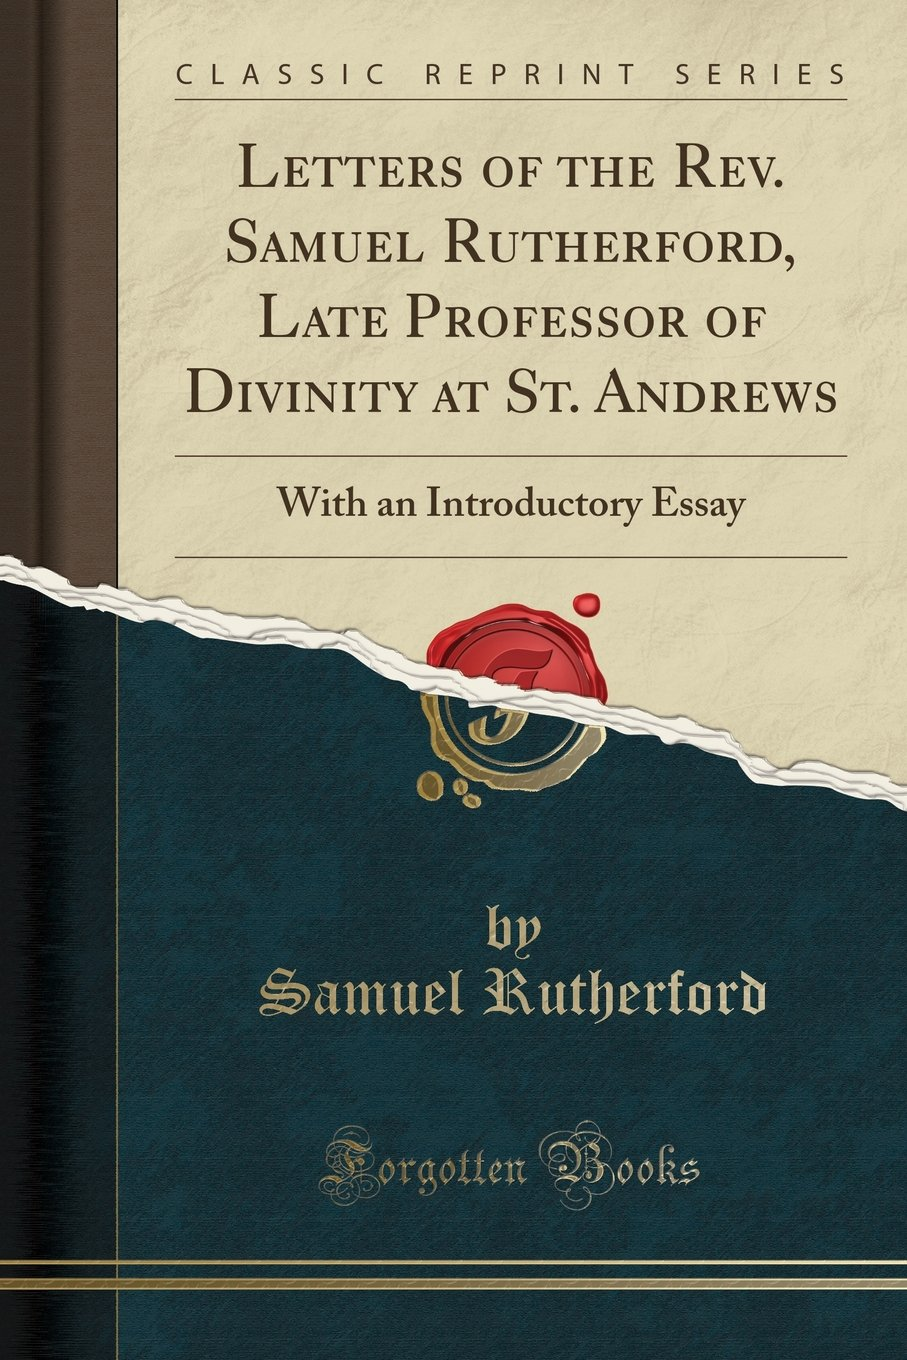 Letters of the Rev. Samuel Rutherford, Late Professor of Divinity at St. Andrews: With an Introductory Essay (Classic Reprint) ebook